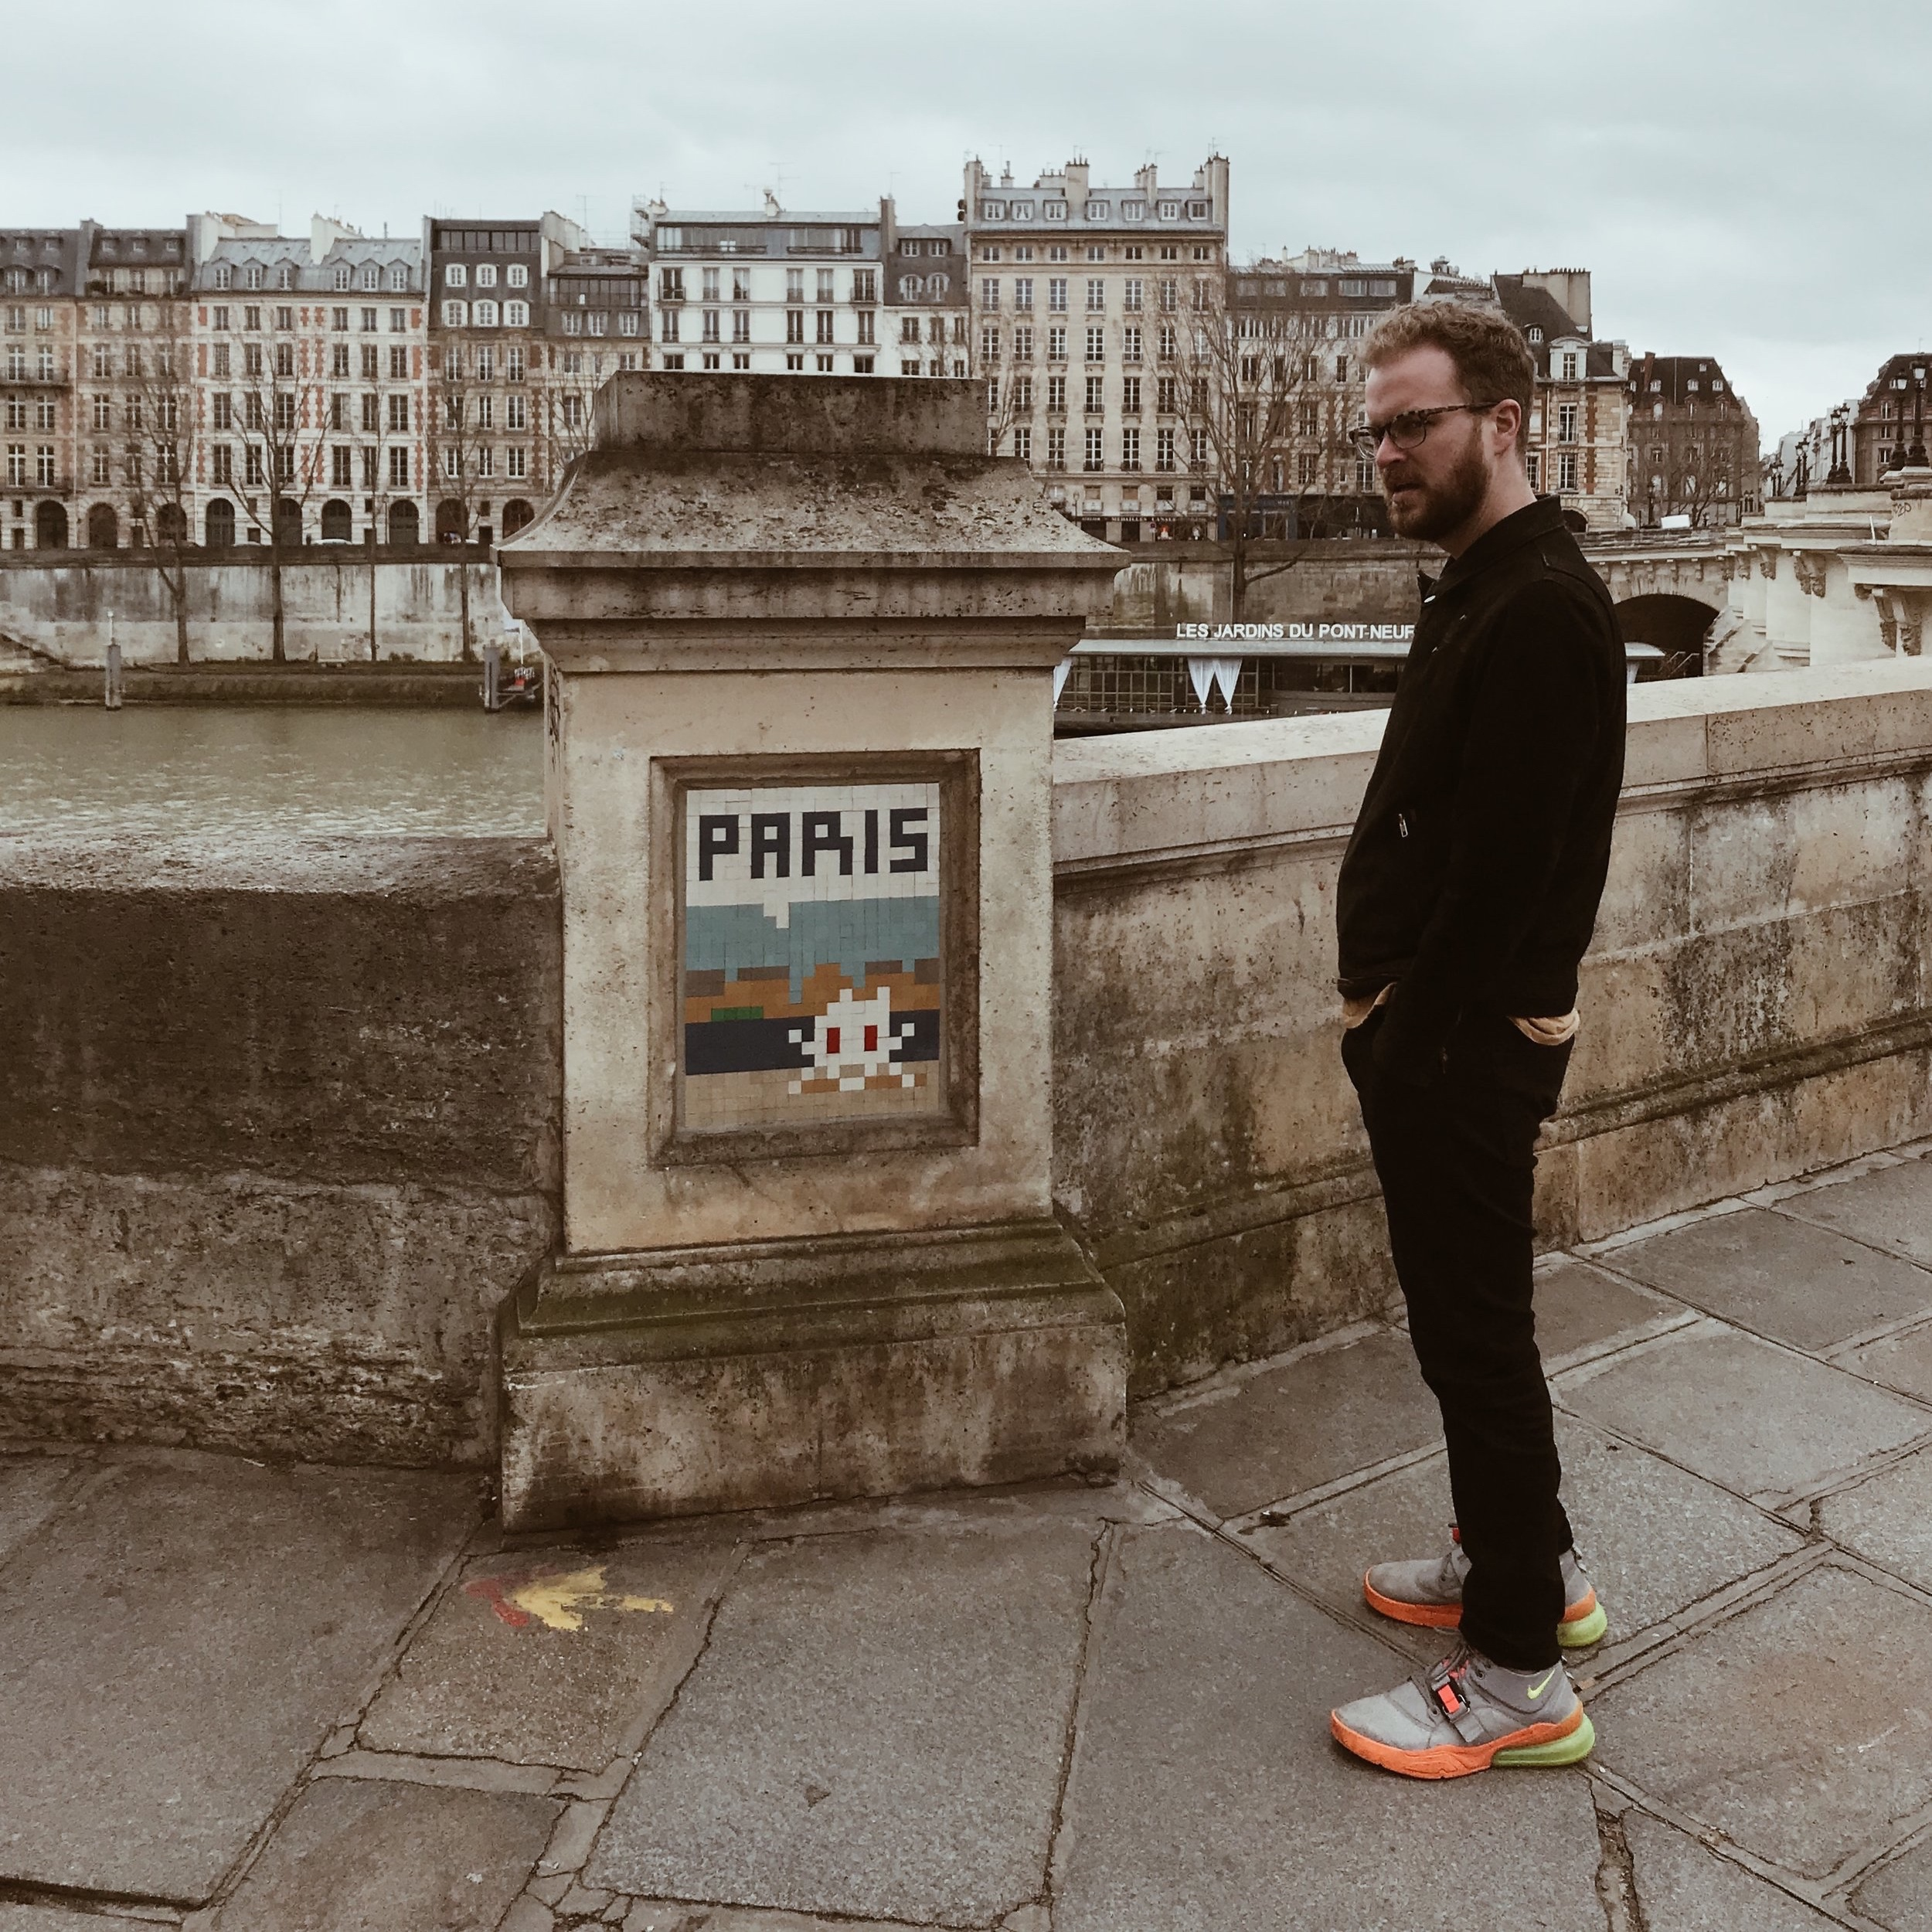 To See (free) / à Voir (libre) - Invader - What's invader? It's the pseudonym of a French urban artist, whose work is modeled on retro 8-bit video games… and they're EVERYWHERE in Paris. Invader works incognito, often masked and largely at night. Using the